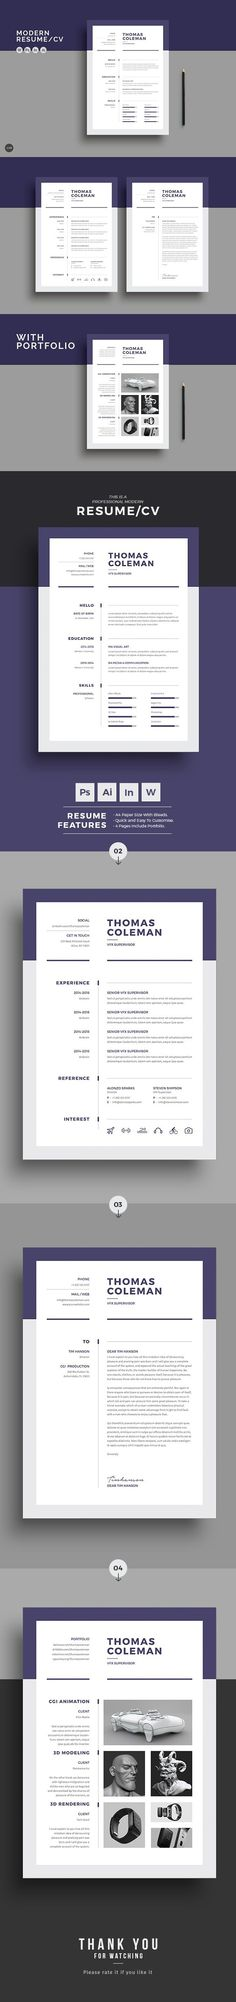 Word Resume Template - Resume Template for Word + Cover Letter - ms word resume templates free